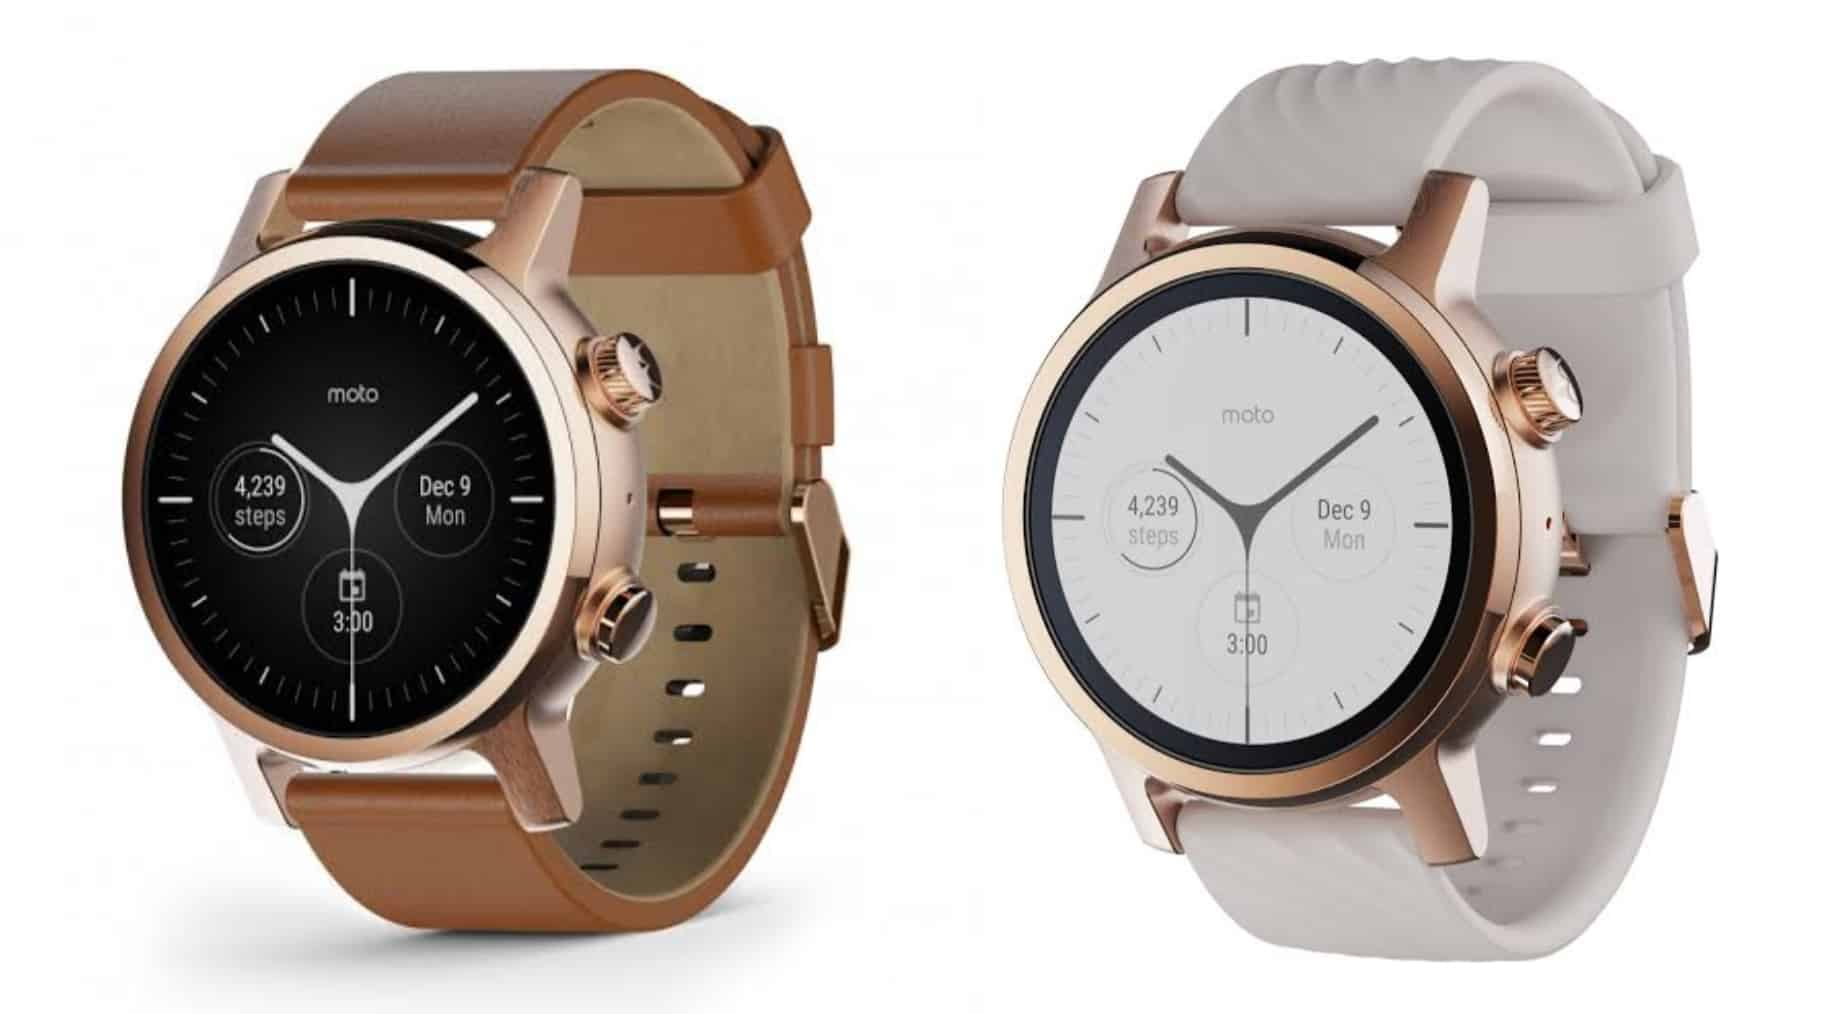 New Moto Wear OS Watches to Come Soon: Moto G, Moto Watch, and Moto One